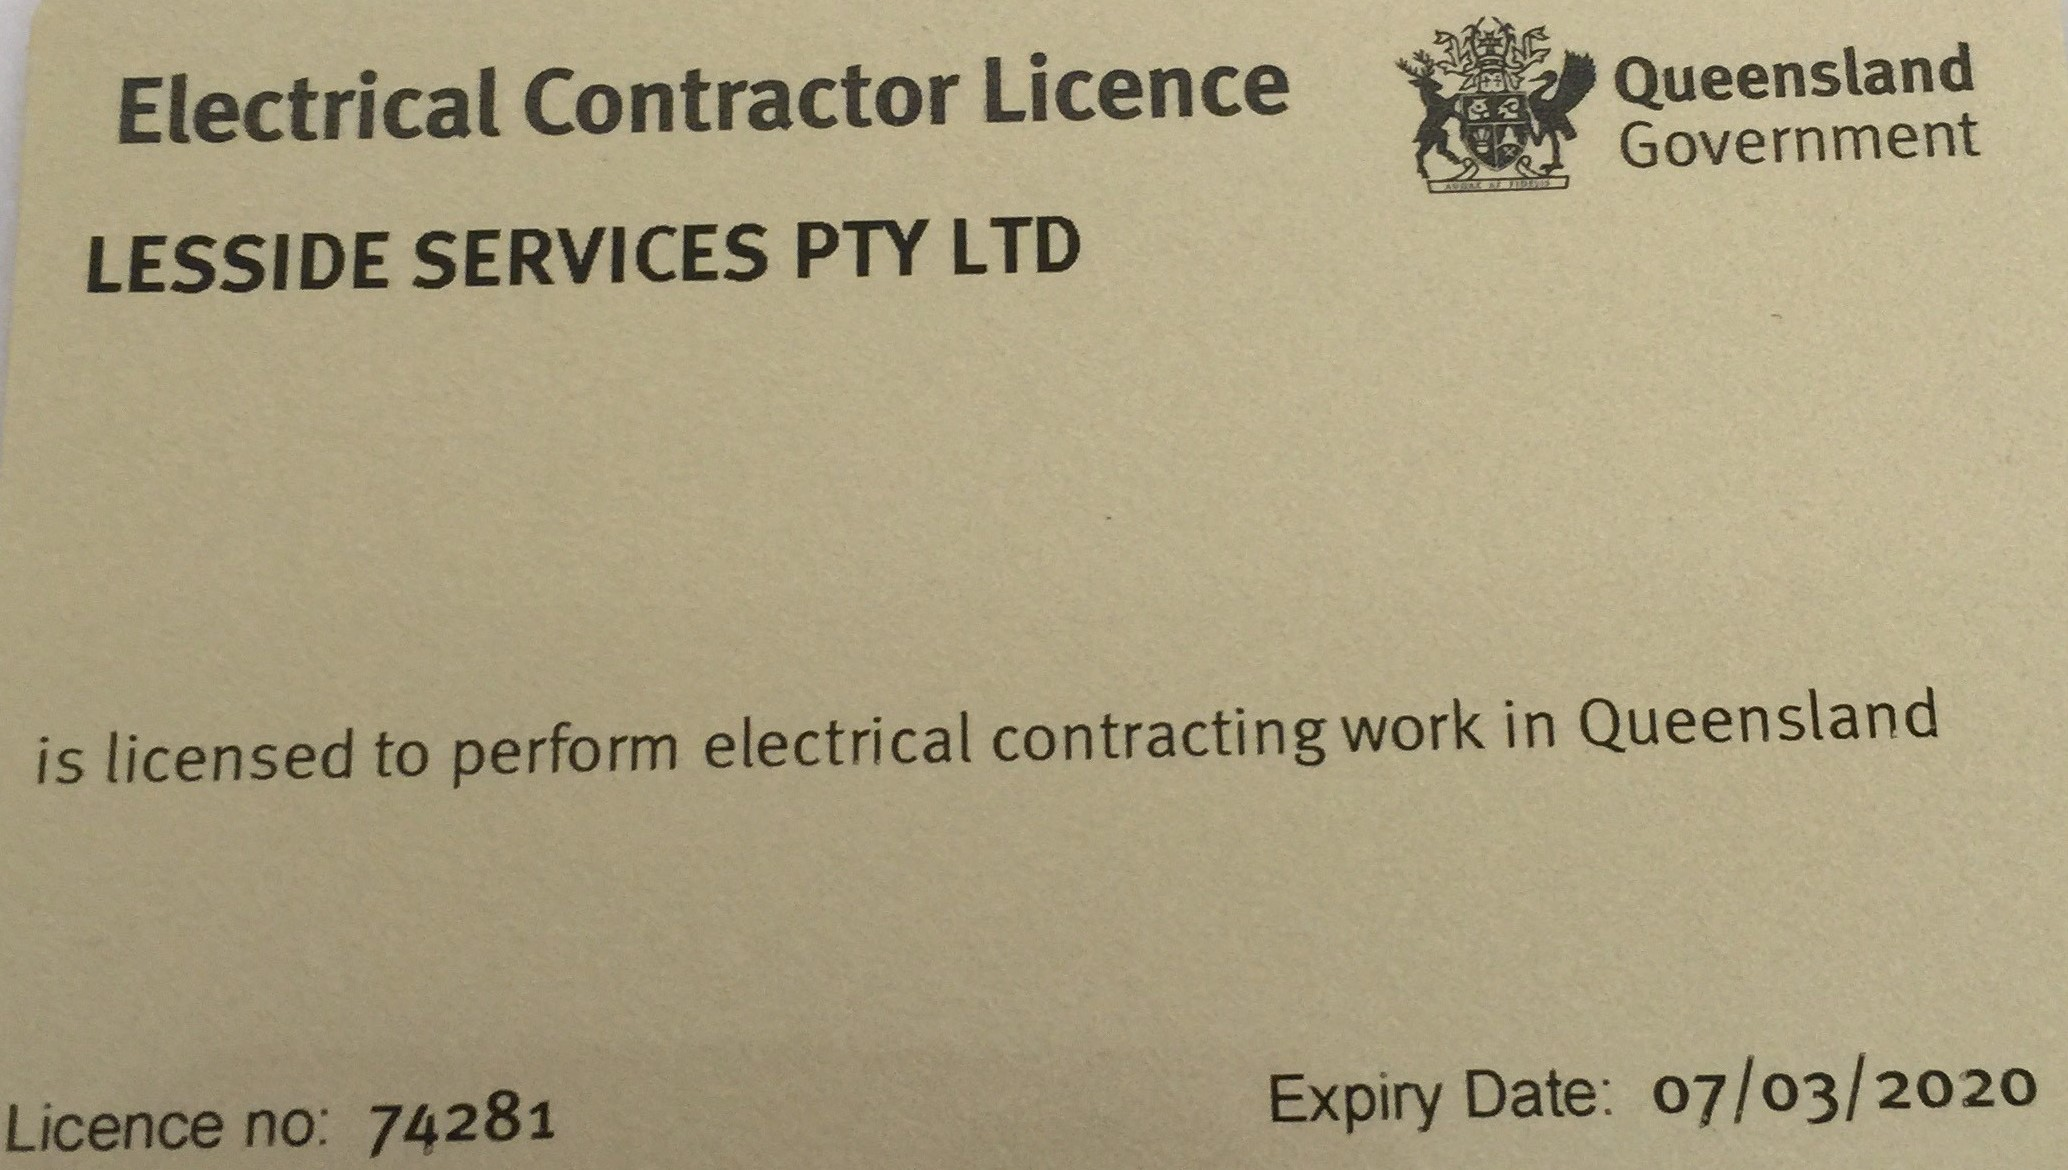 Electrical Contractor Licence 2019-2020